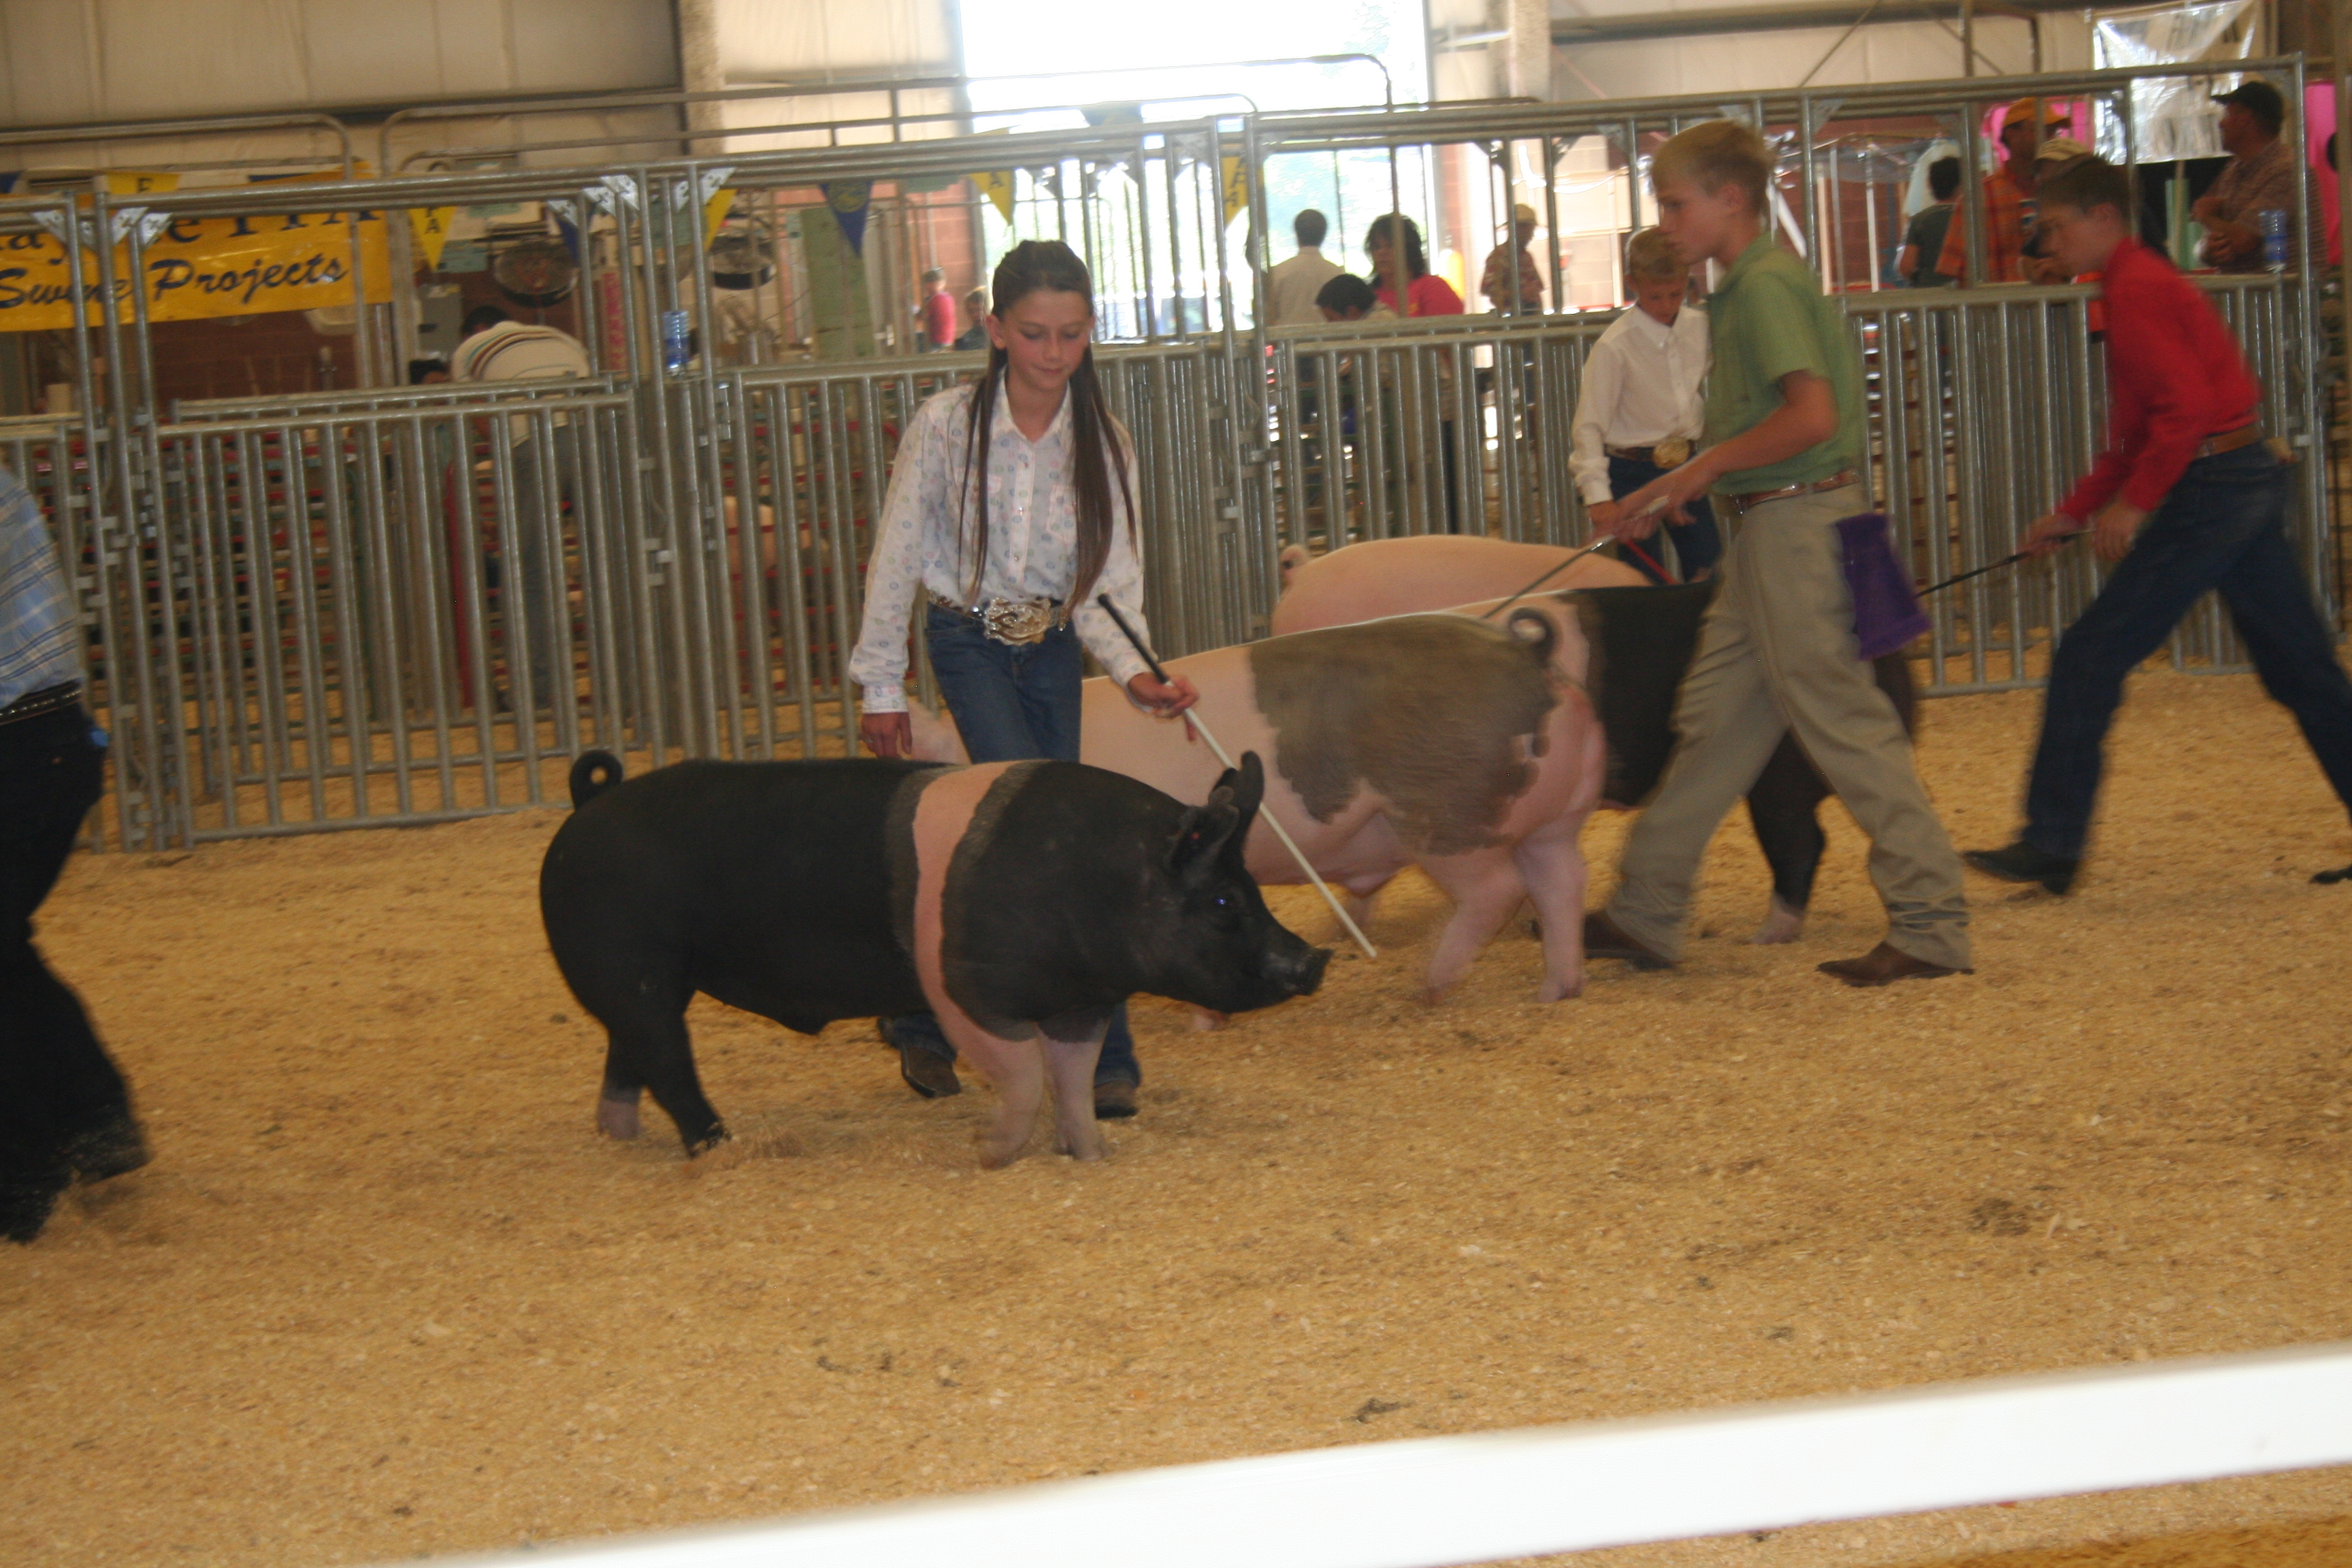 Young girl showing a pig.